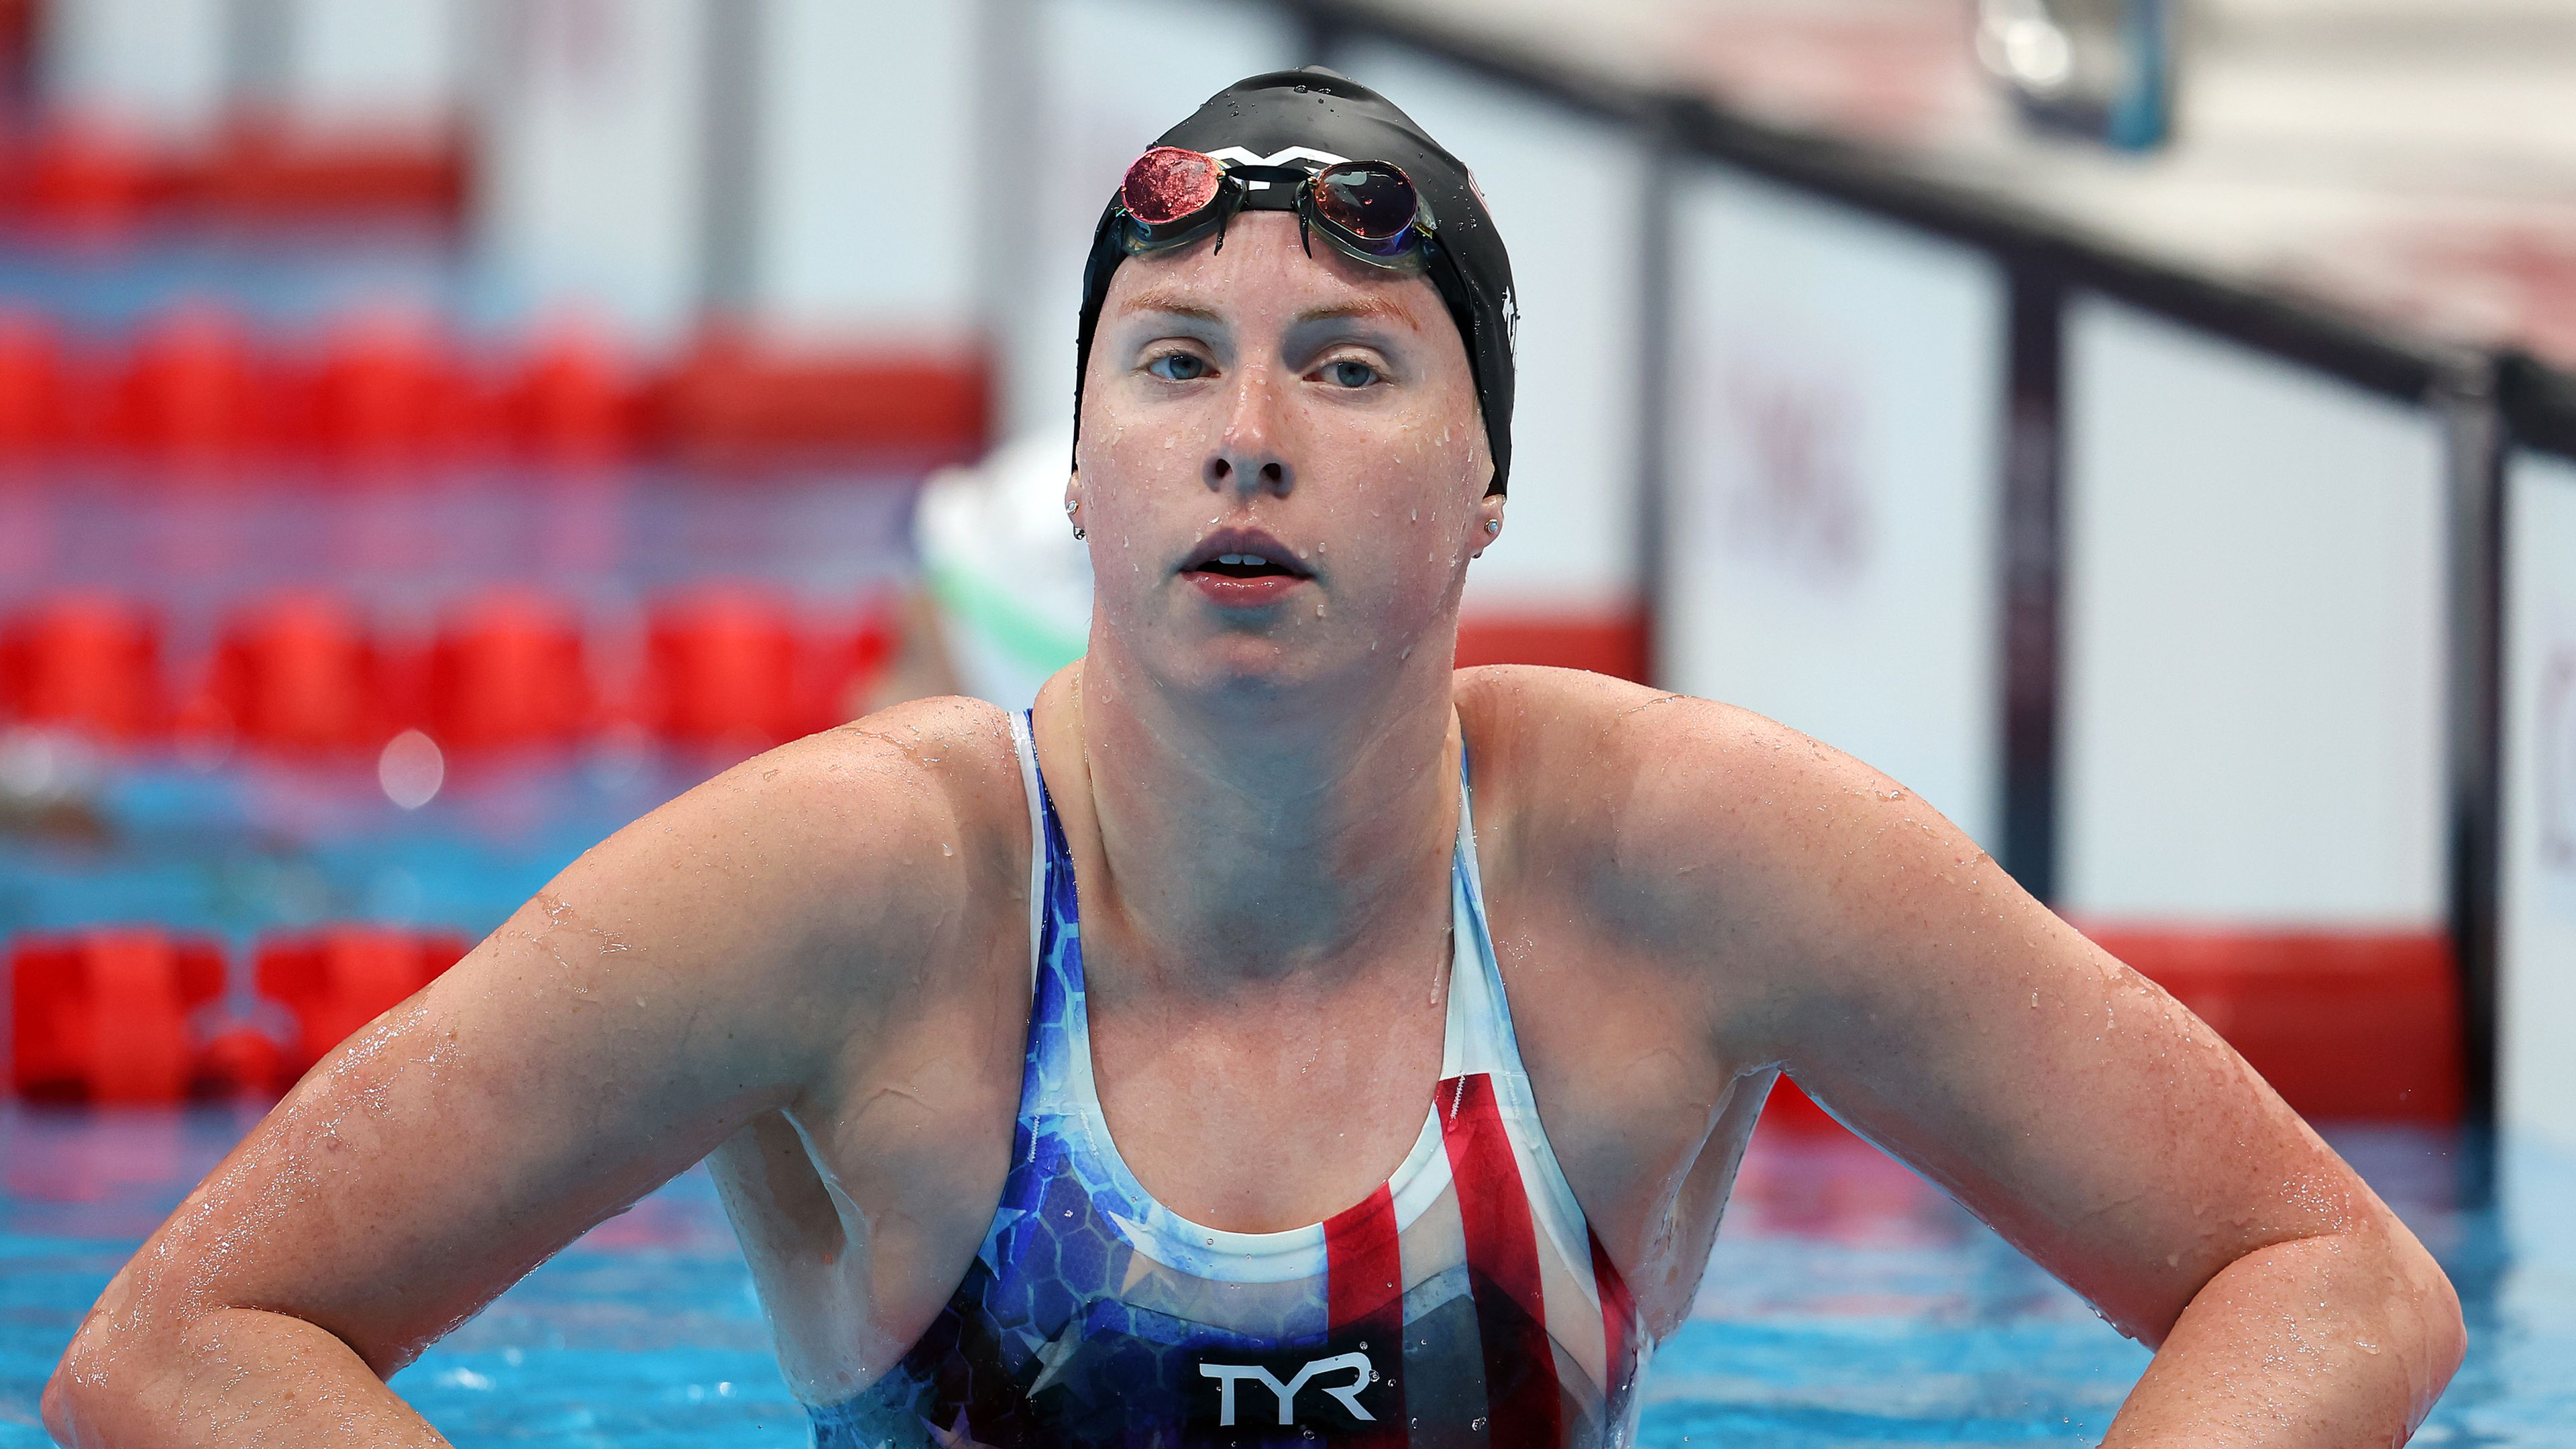 Outspoken US swim star Lilly King upset she feels she can't celebrate winning a silver medal